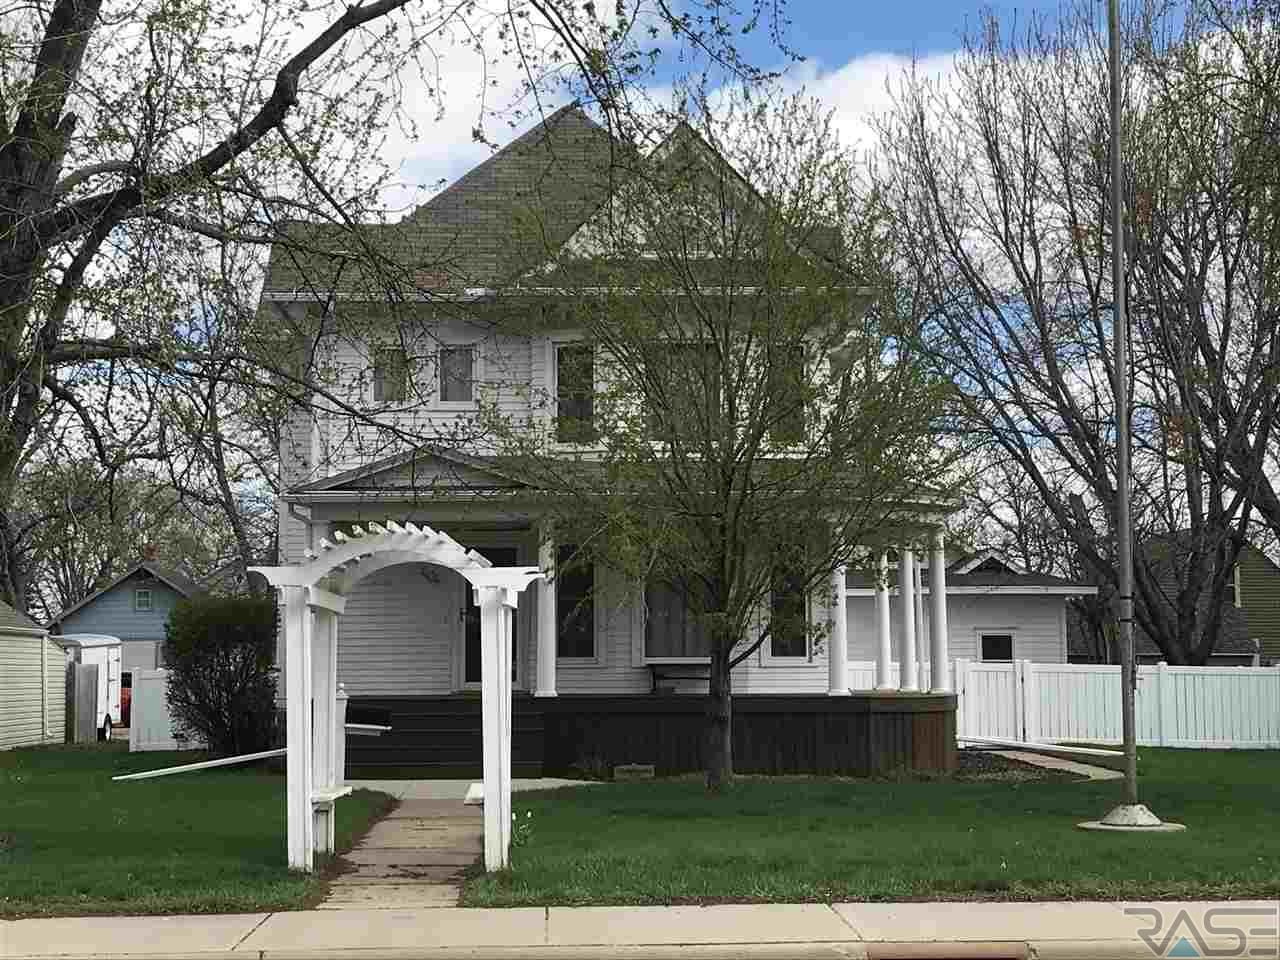 All Homes For Sale In Beresford Sd Local Information About